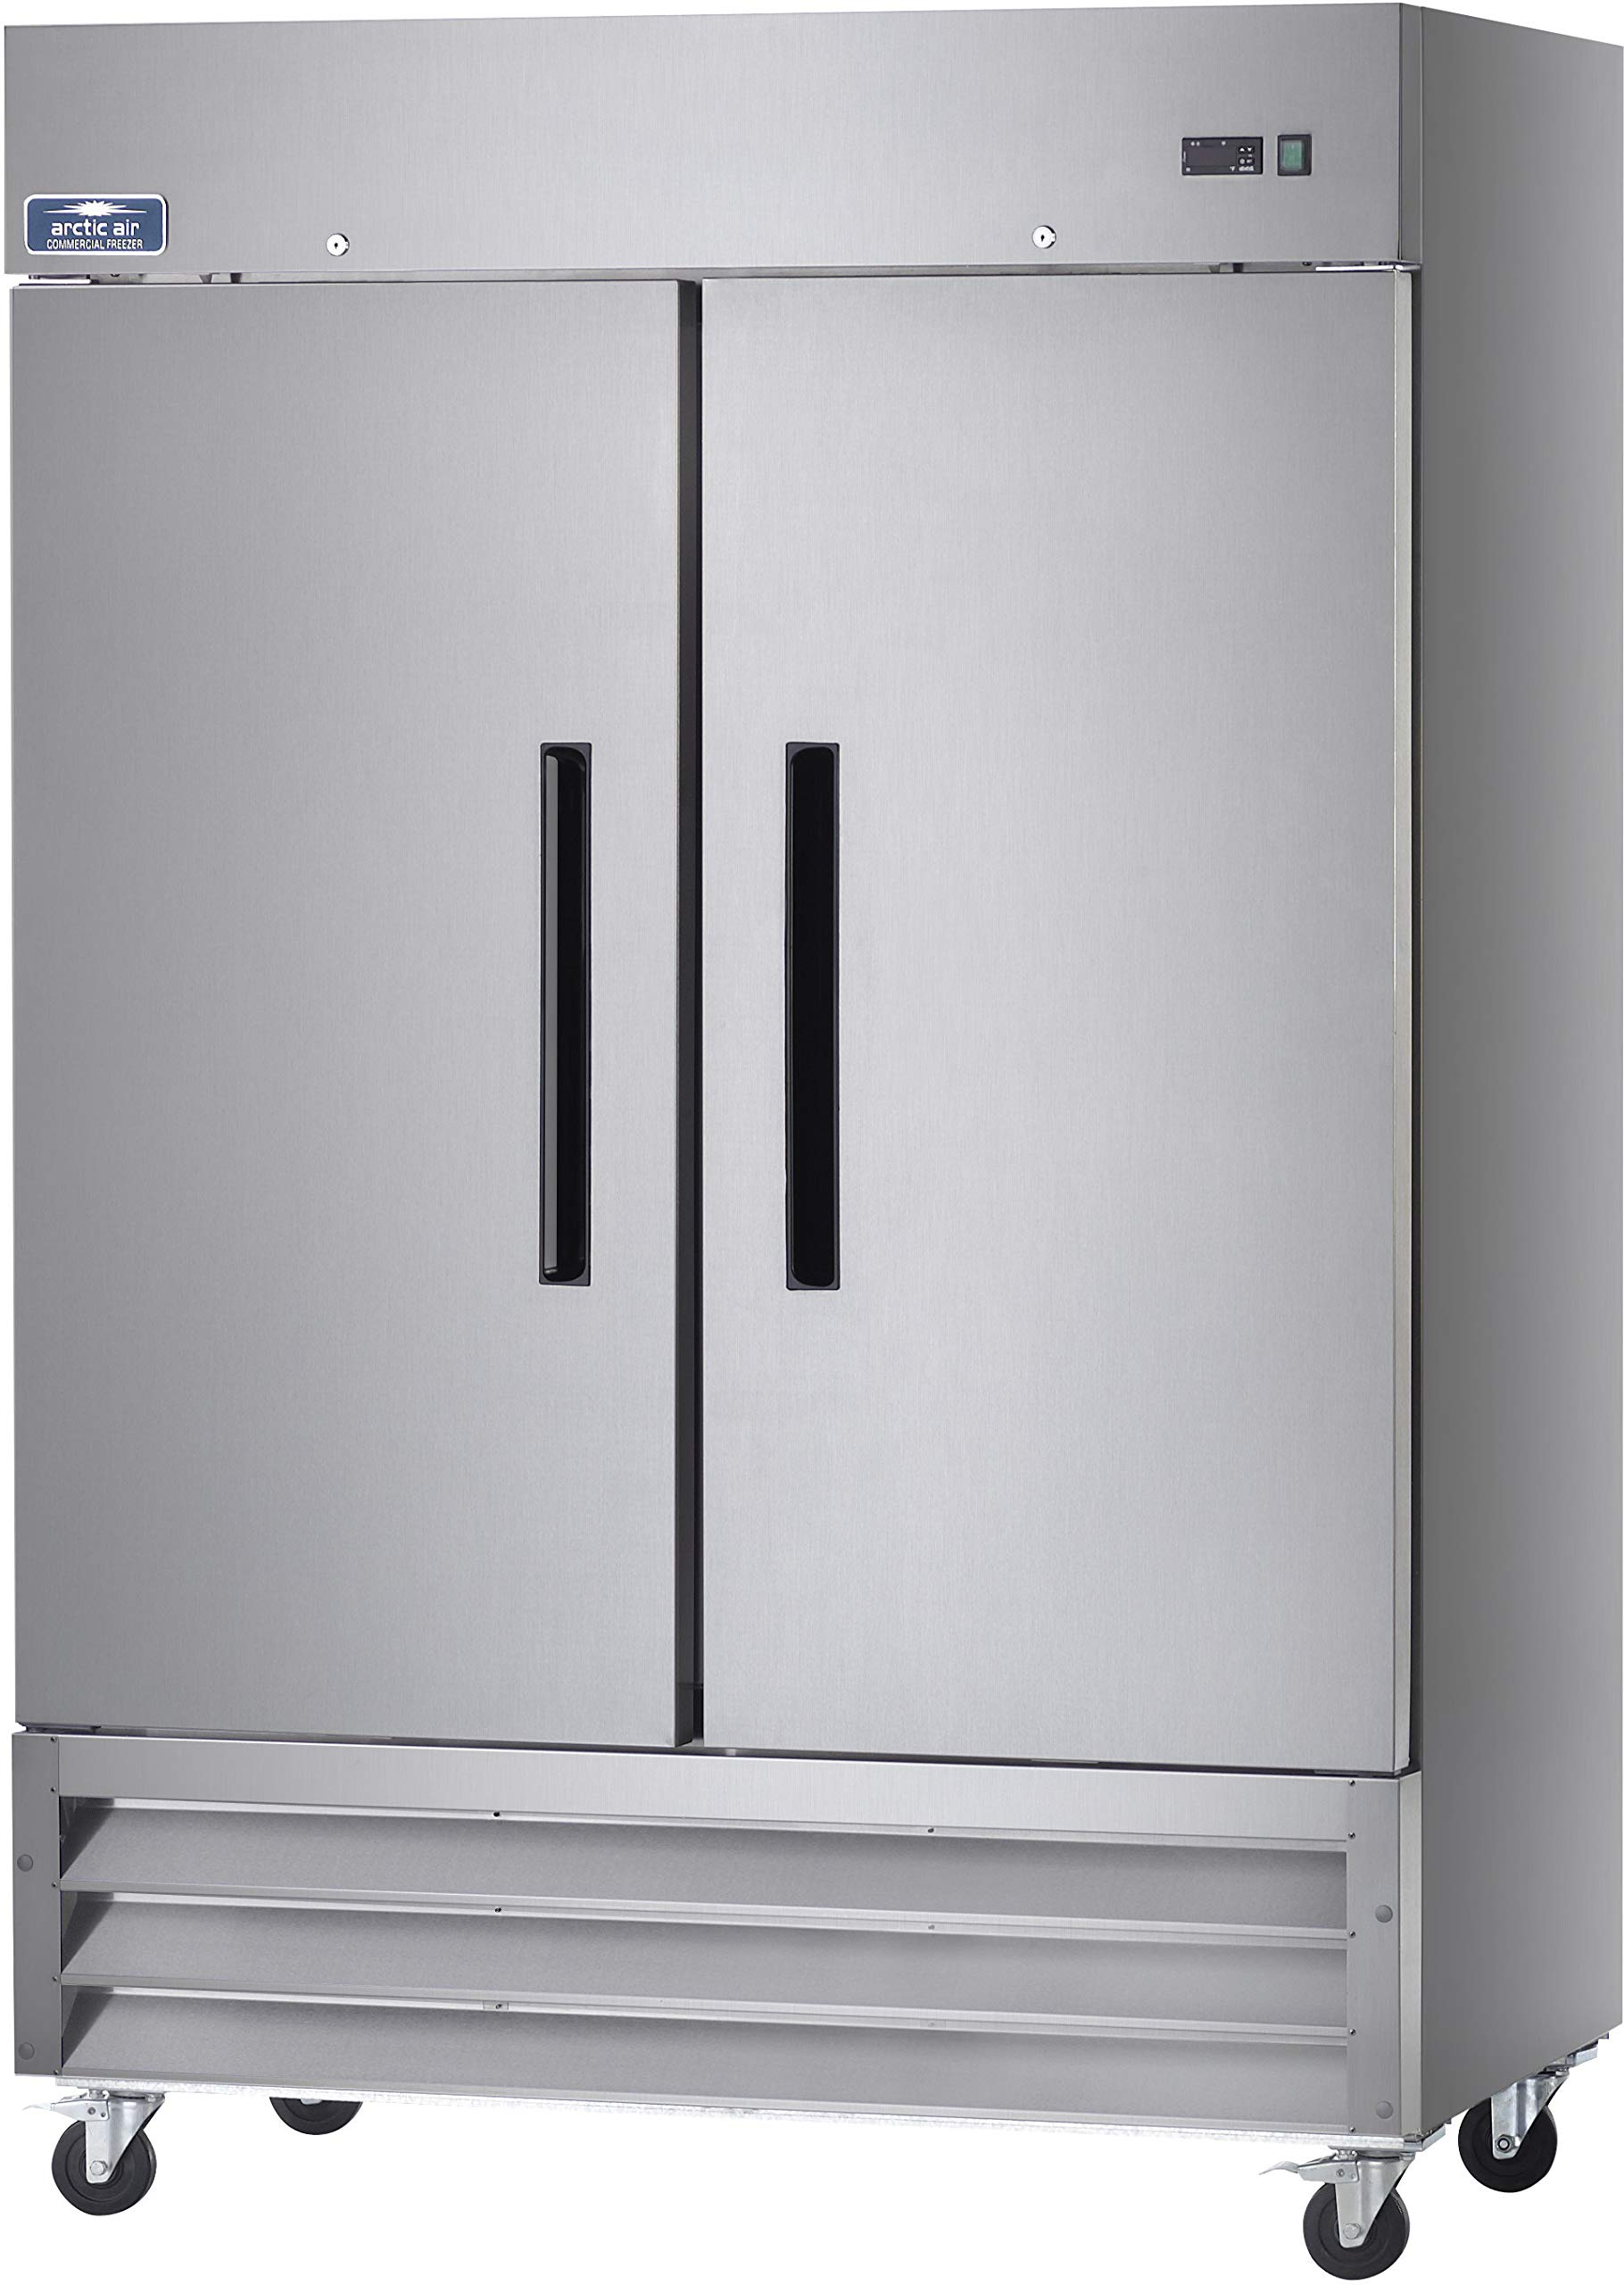 Arctic Air AR49 54'' Two Section Solid Door Reach-in Commercial Refrigerator - 49 cu. ft. by Arctic Air